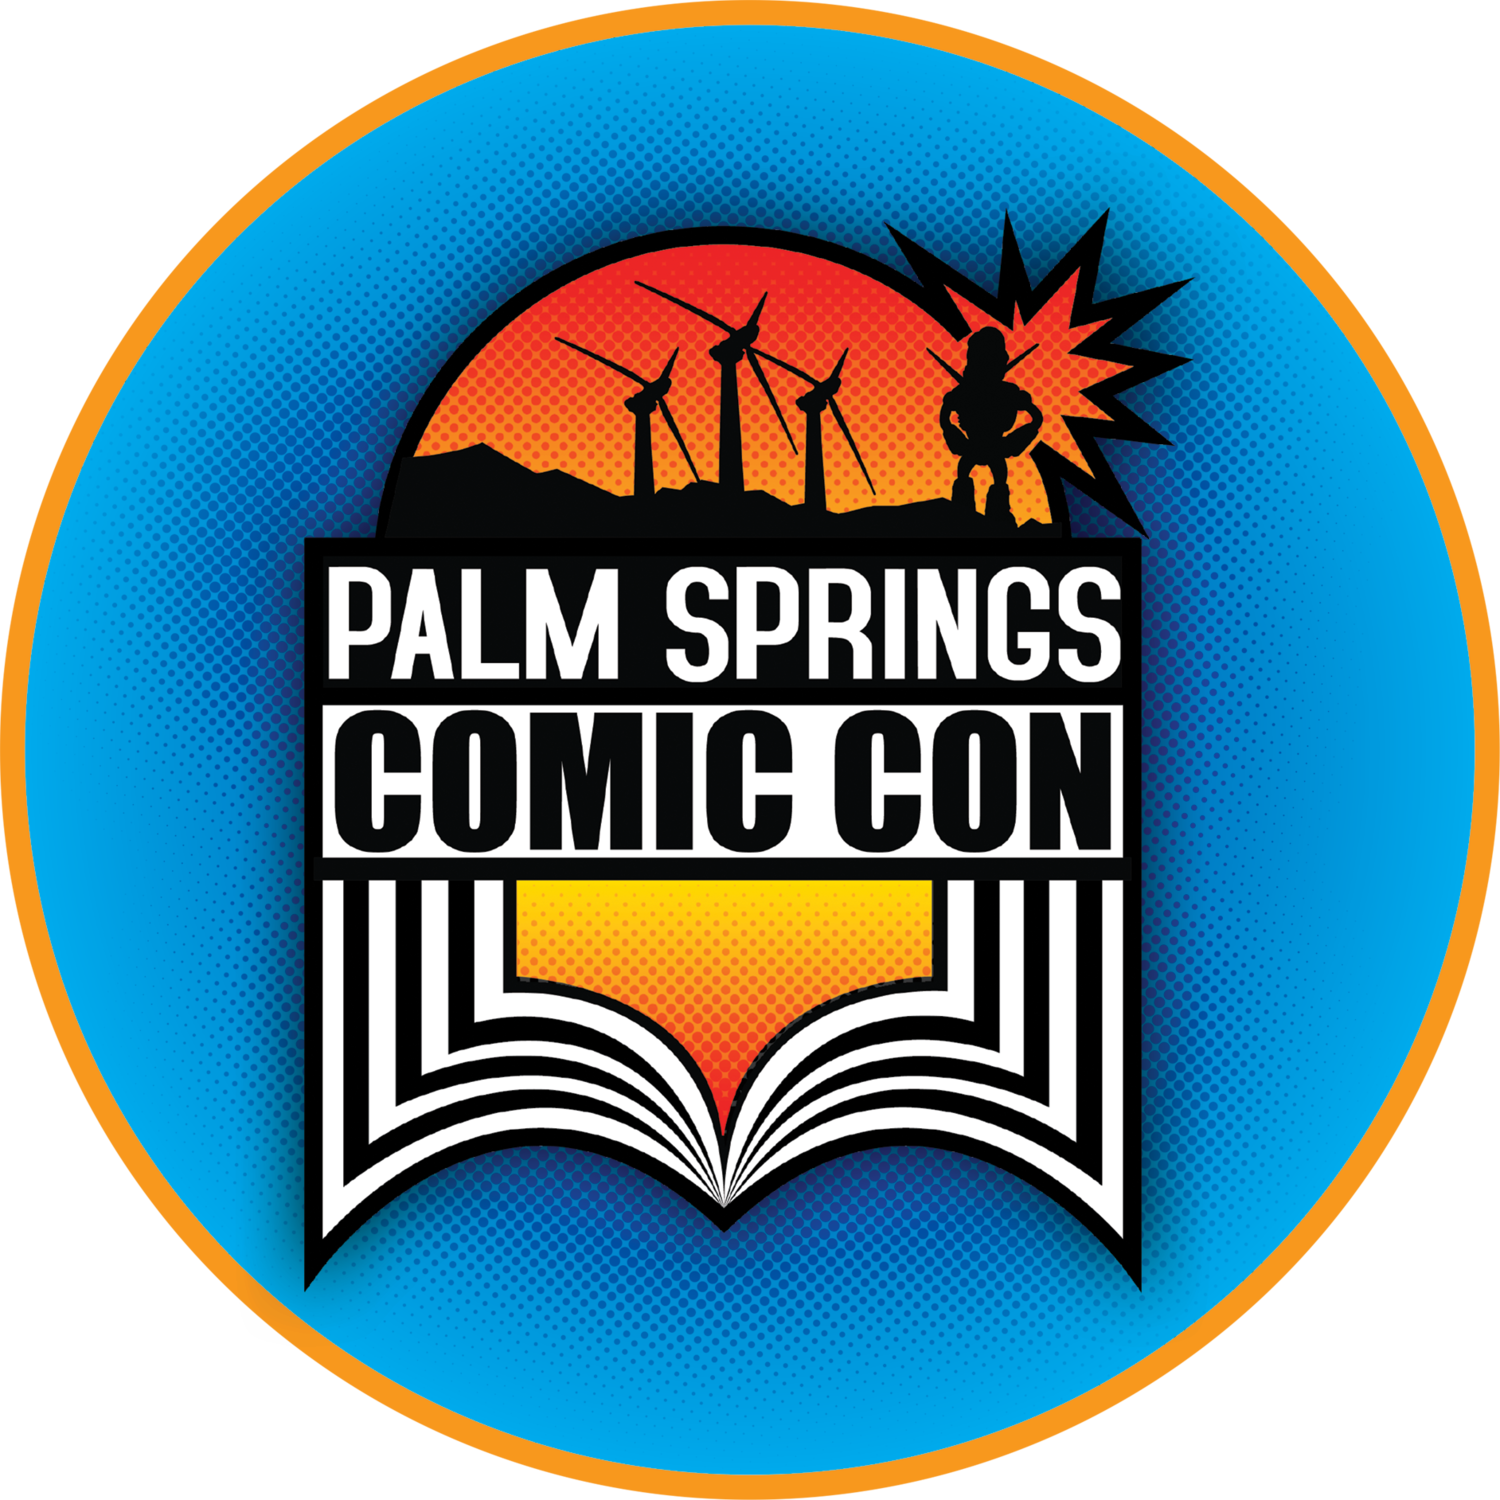 PALM SPRINGS COMIC CON